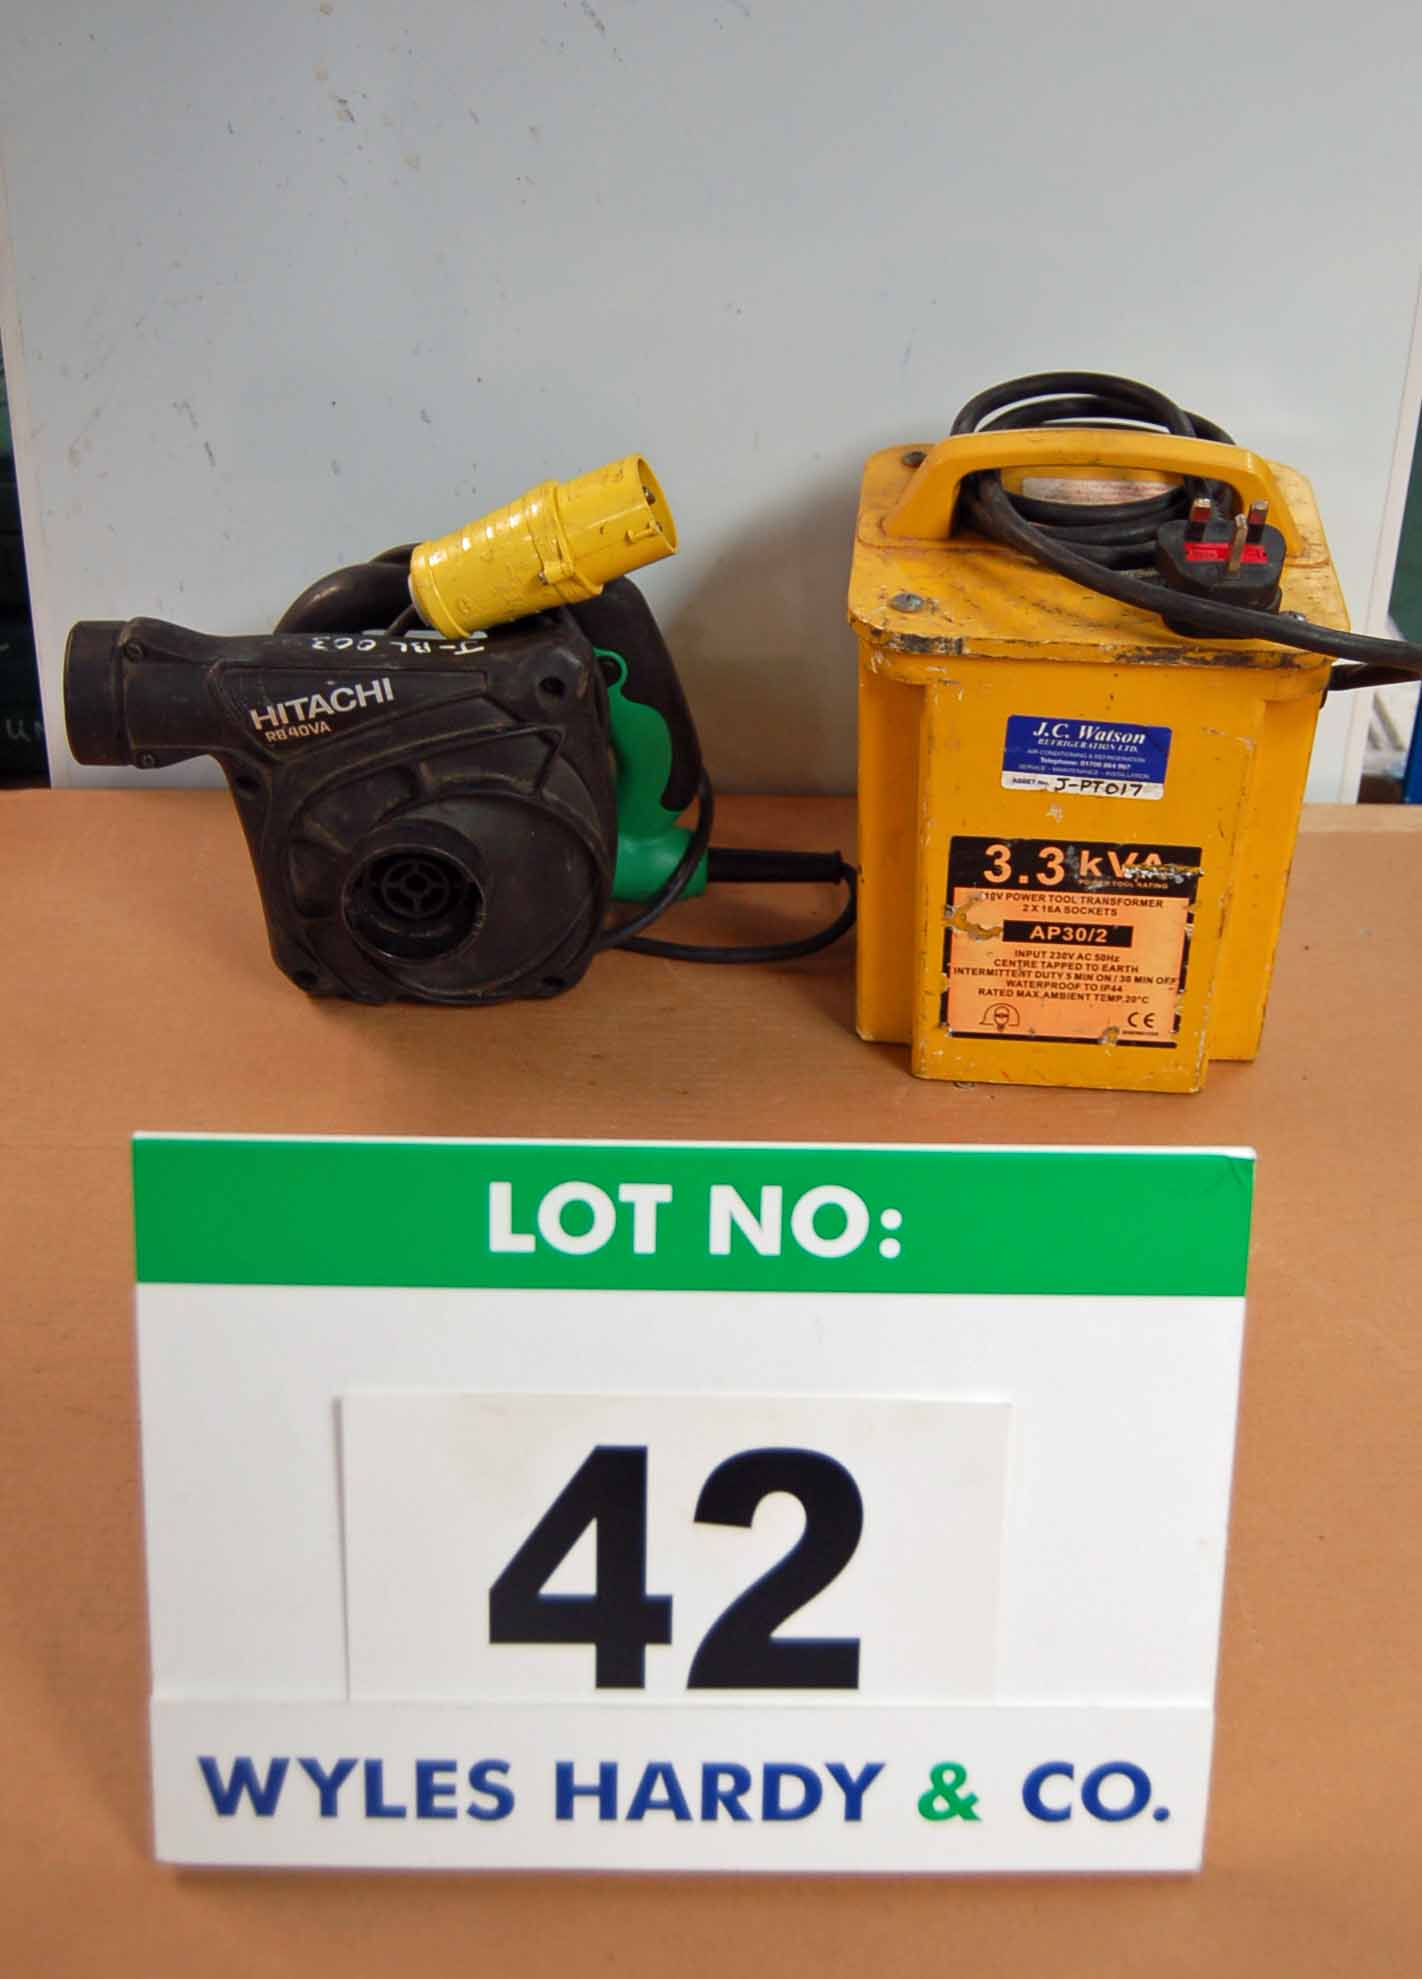 Lot 42 - A HITACHI RB40VA 110V Hand Held Blower and A 3.3KV 240V-110V Transformer with Two 16-Amp Outlets